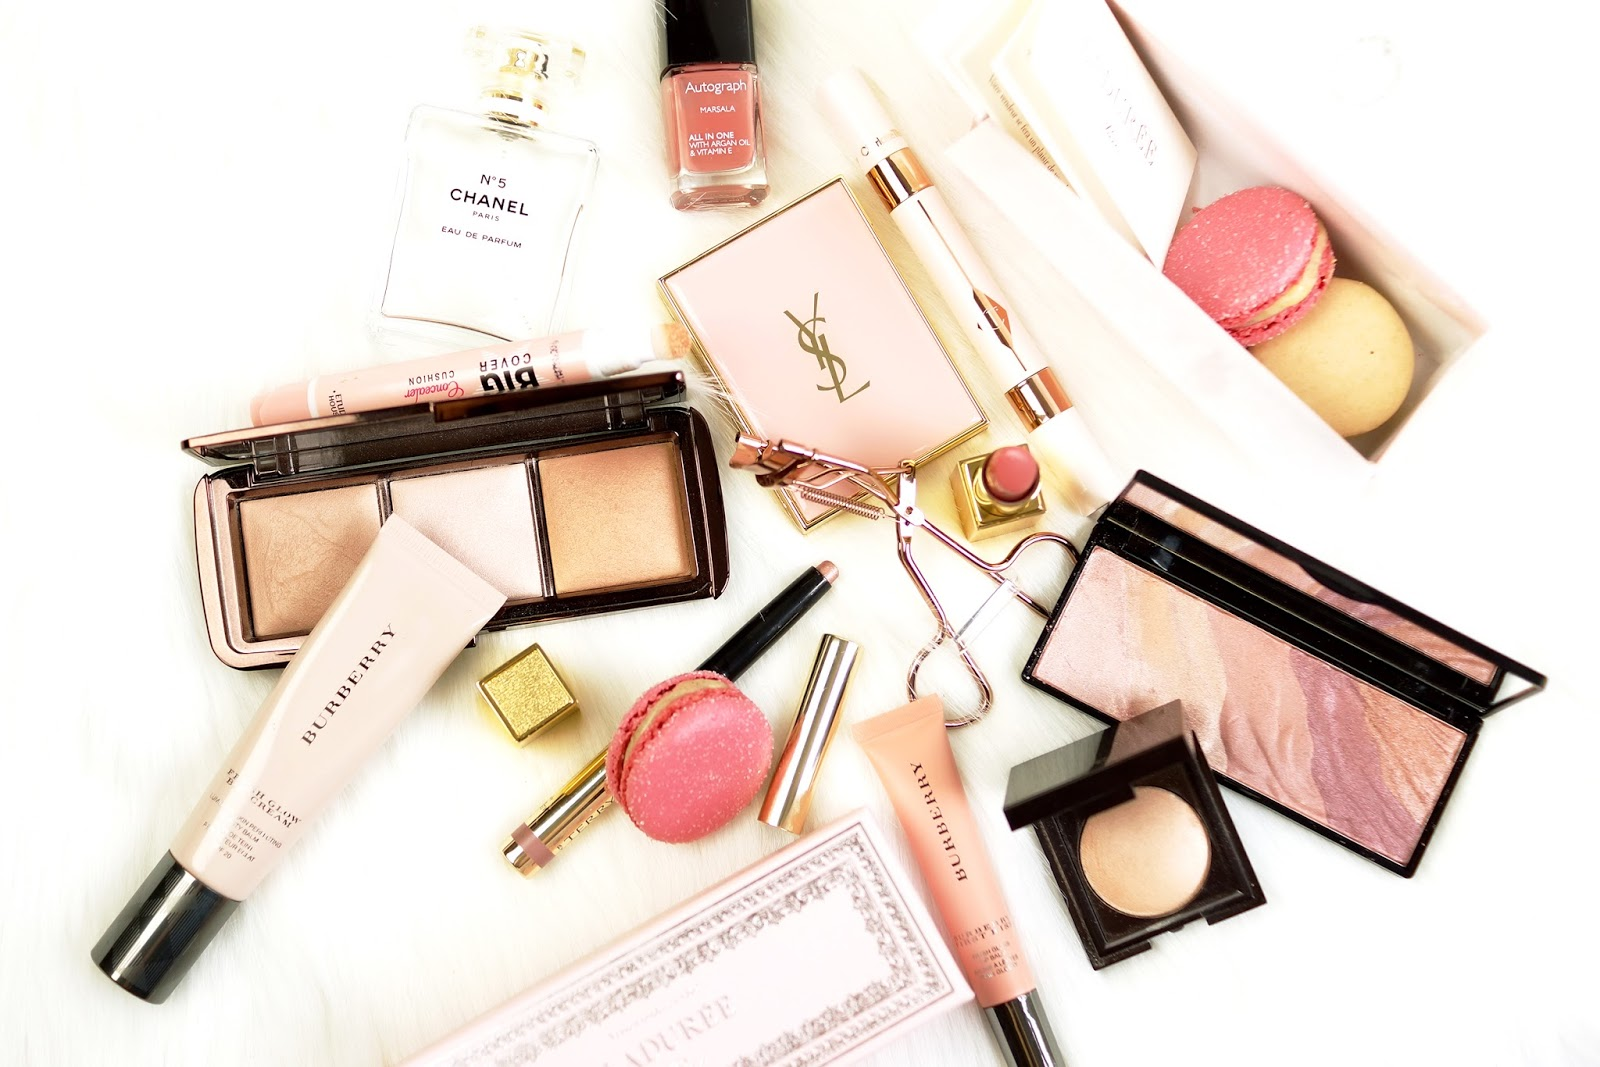 makeup-flatlay-pink-barely-there-beauty-blog-chanel-hourglass-charlotte-tilbury